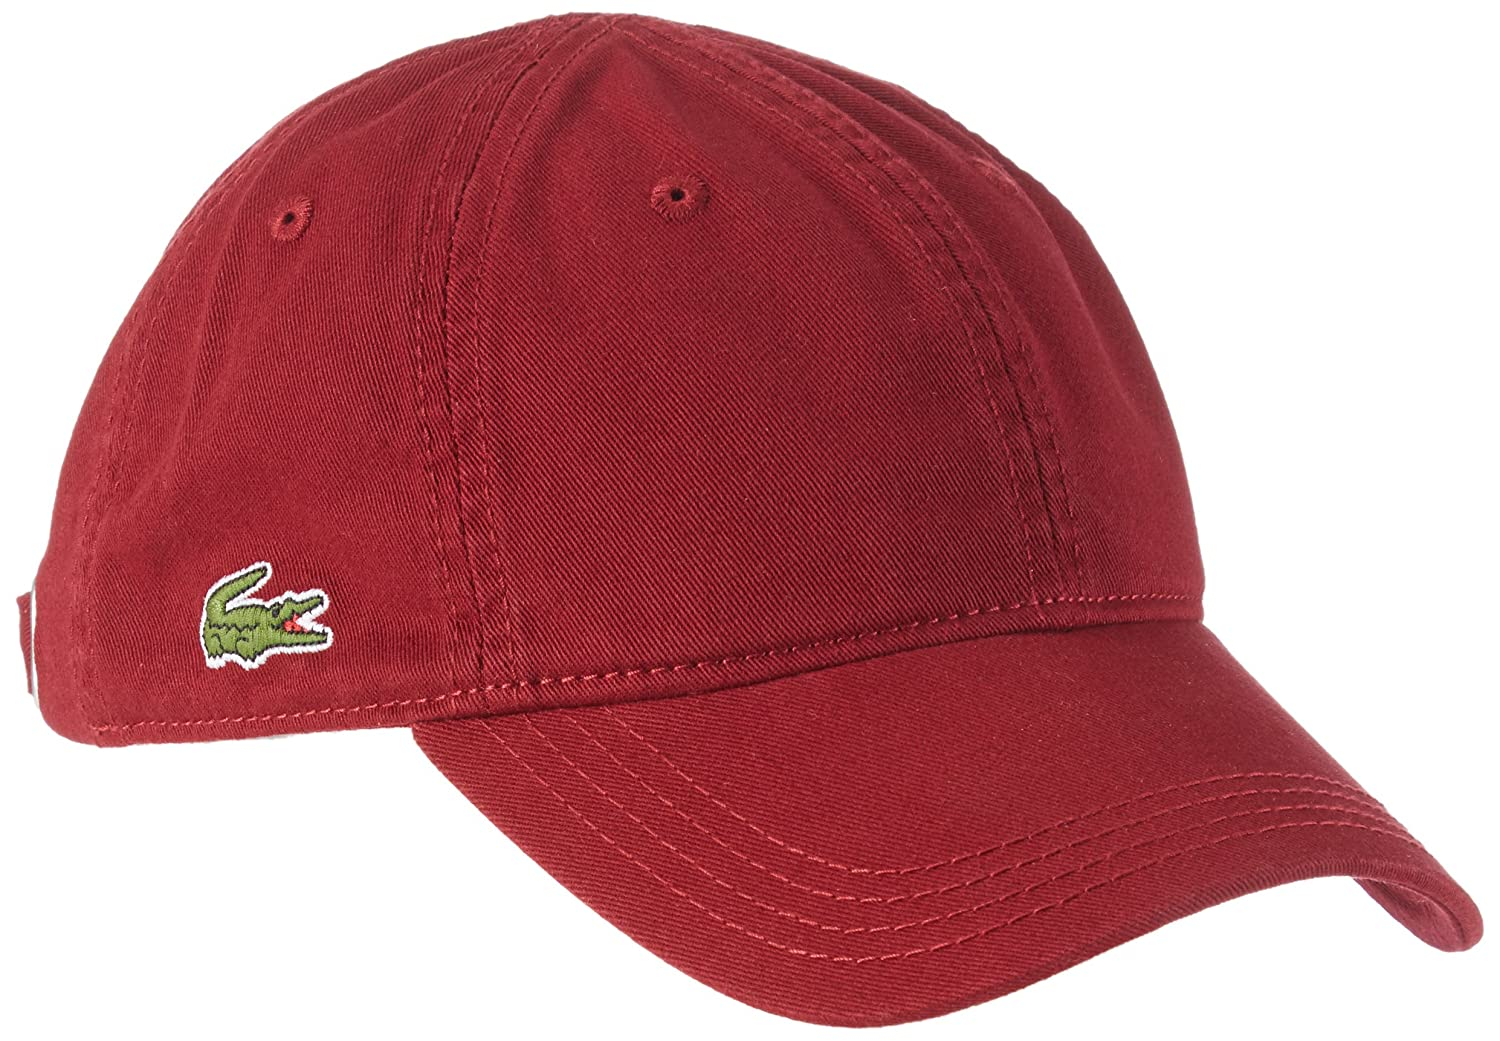 8f80e51687a Lacoste Men s Baseball Cap  Amazon.co.uk  Clothing